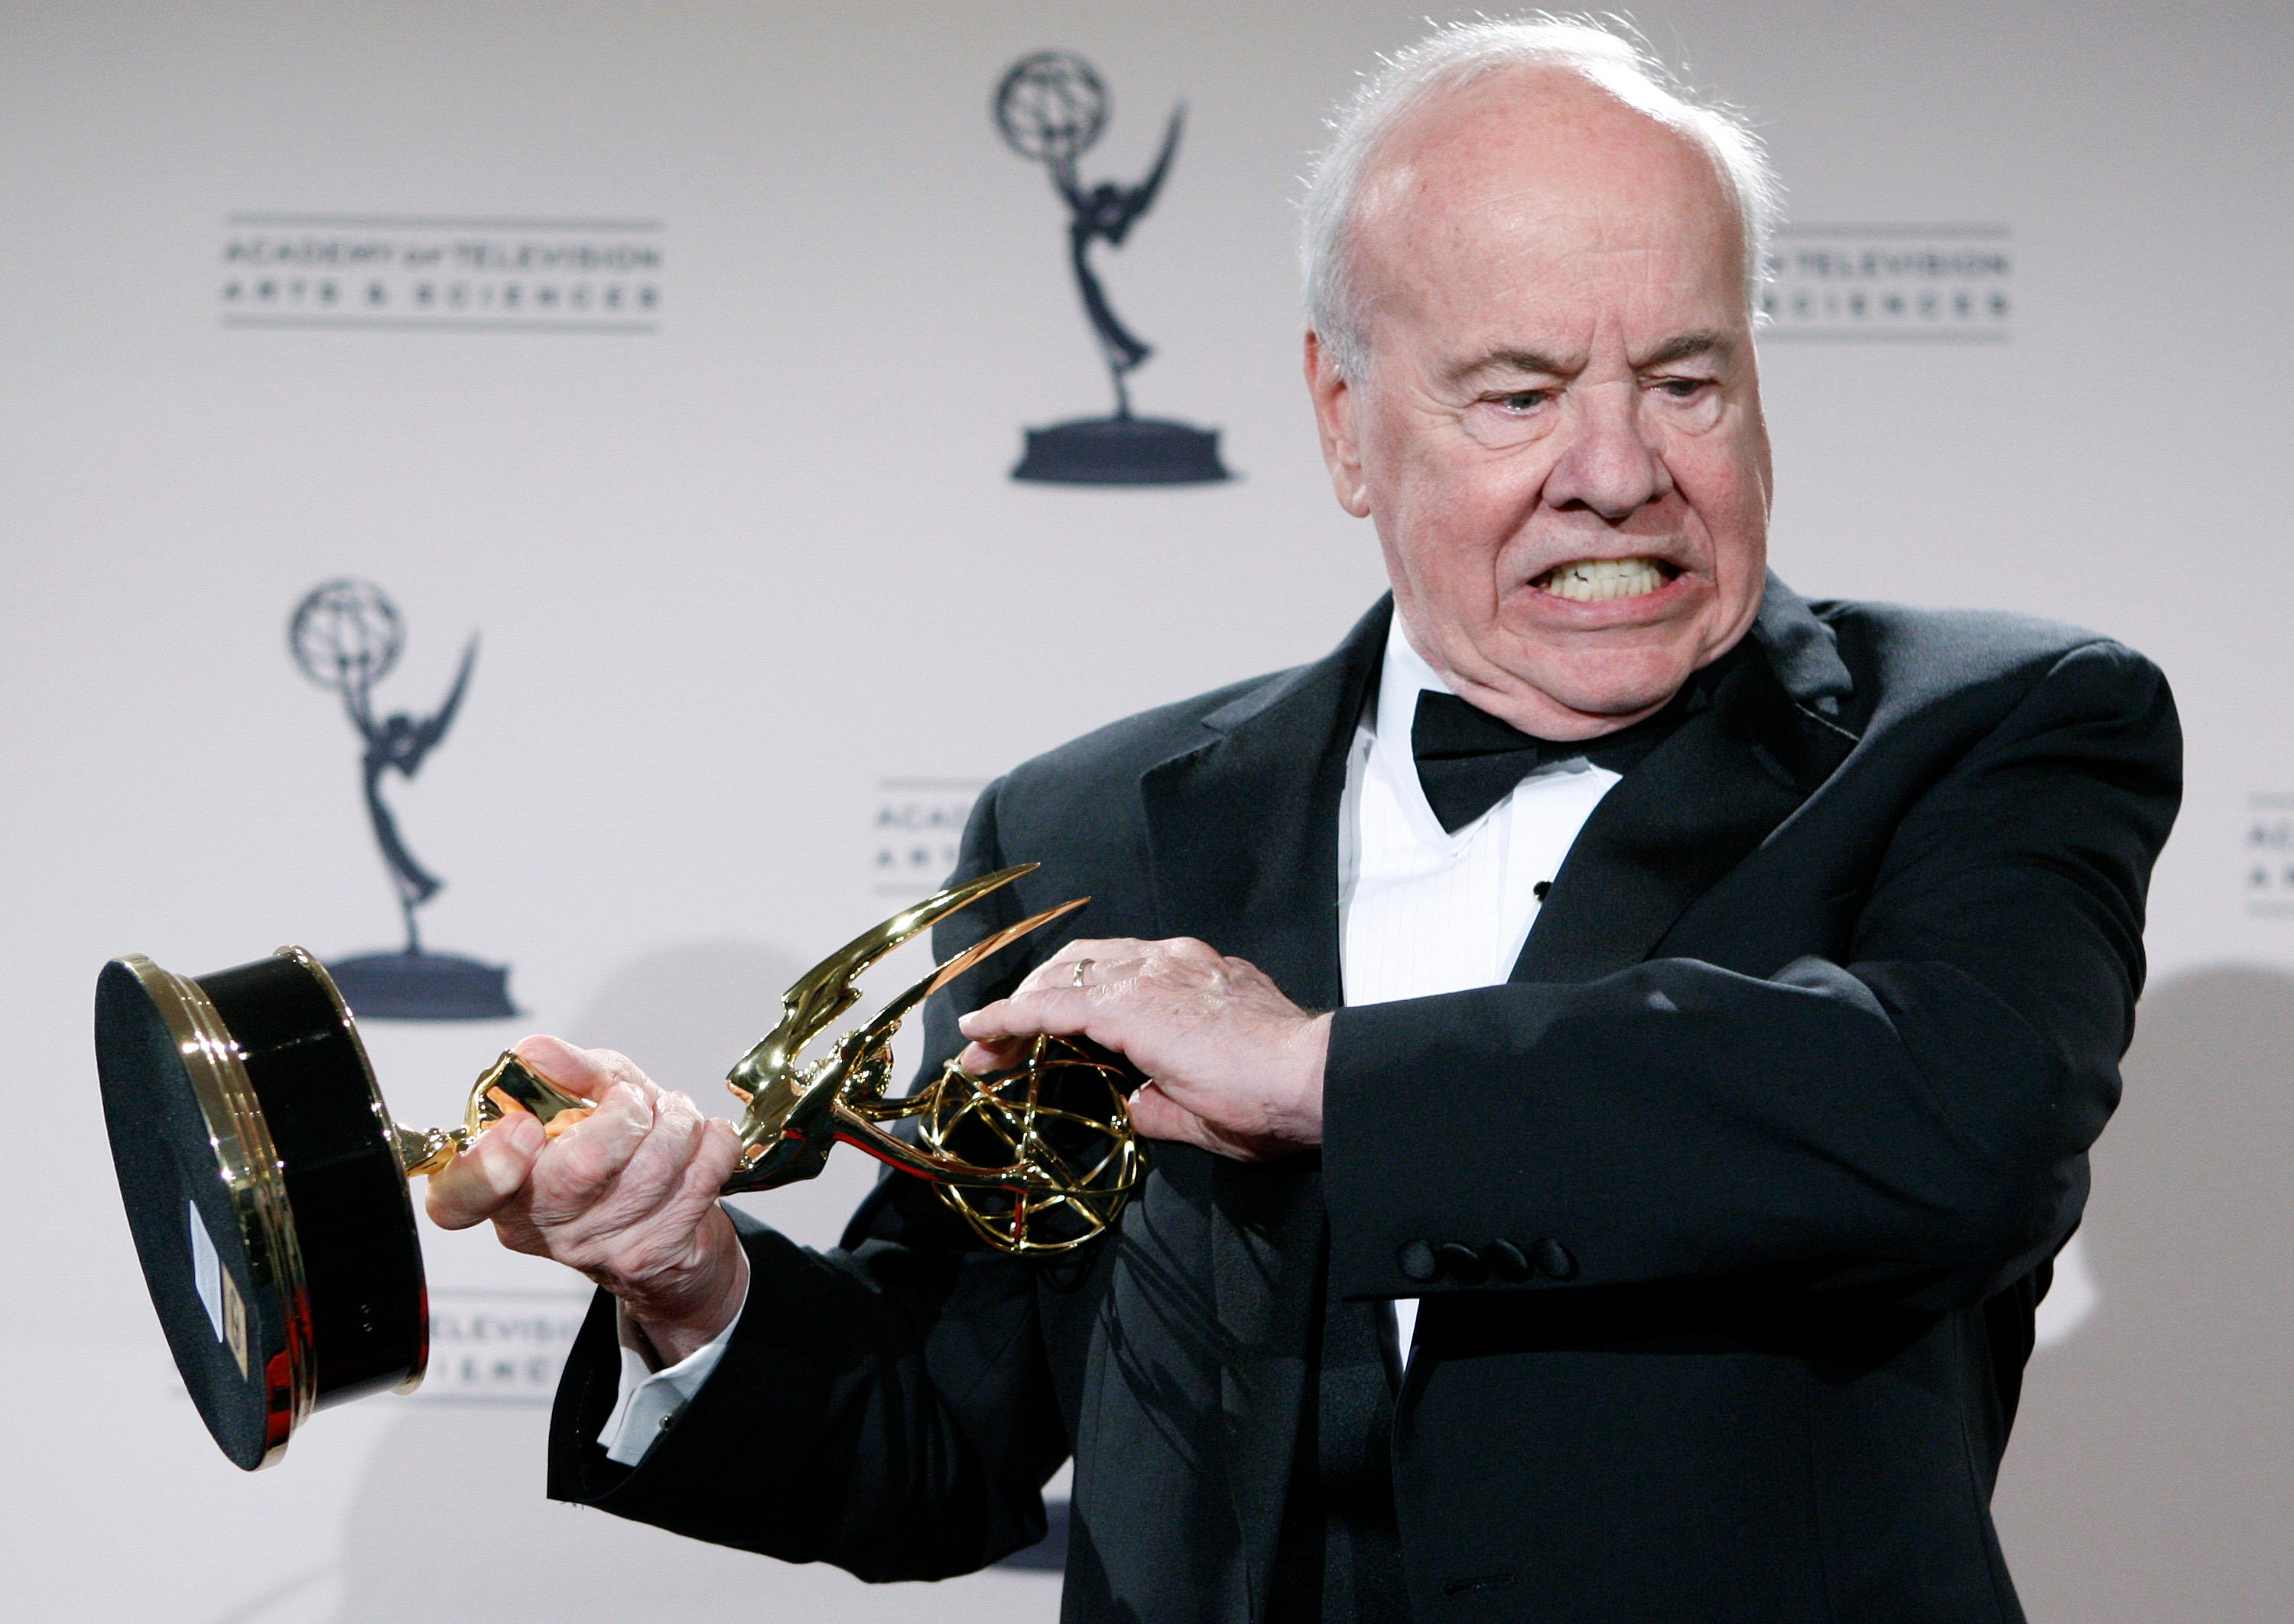 Comedian Tim Conway suffering from dementia; family feuds in court over care